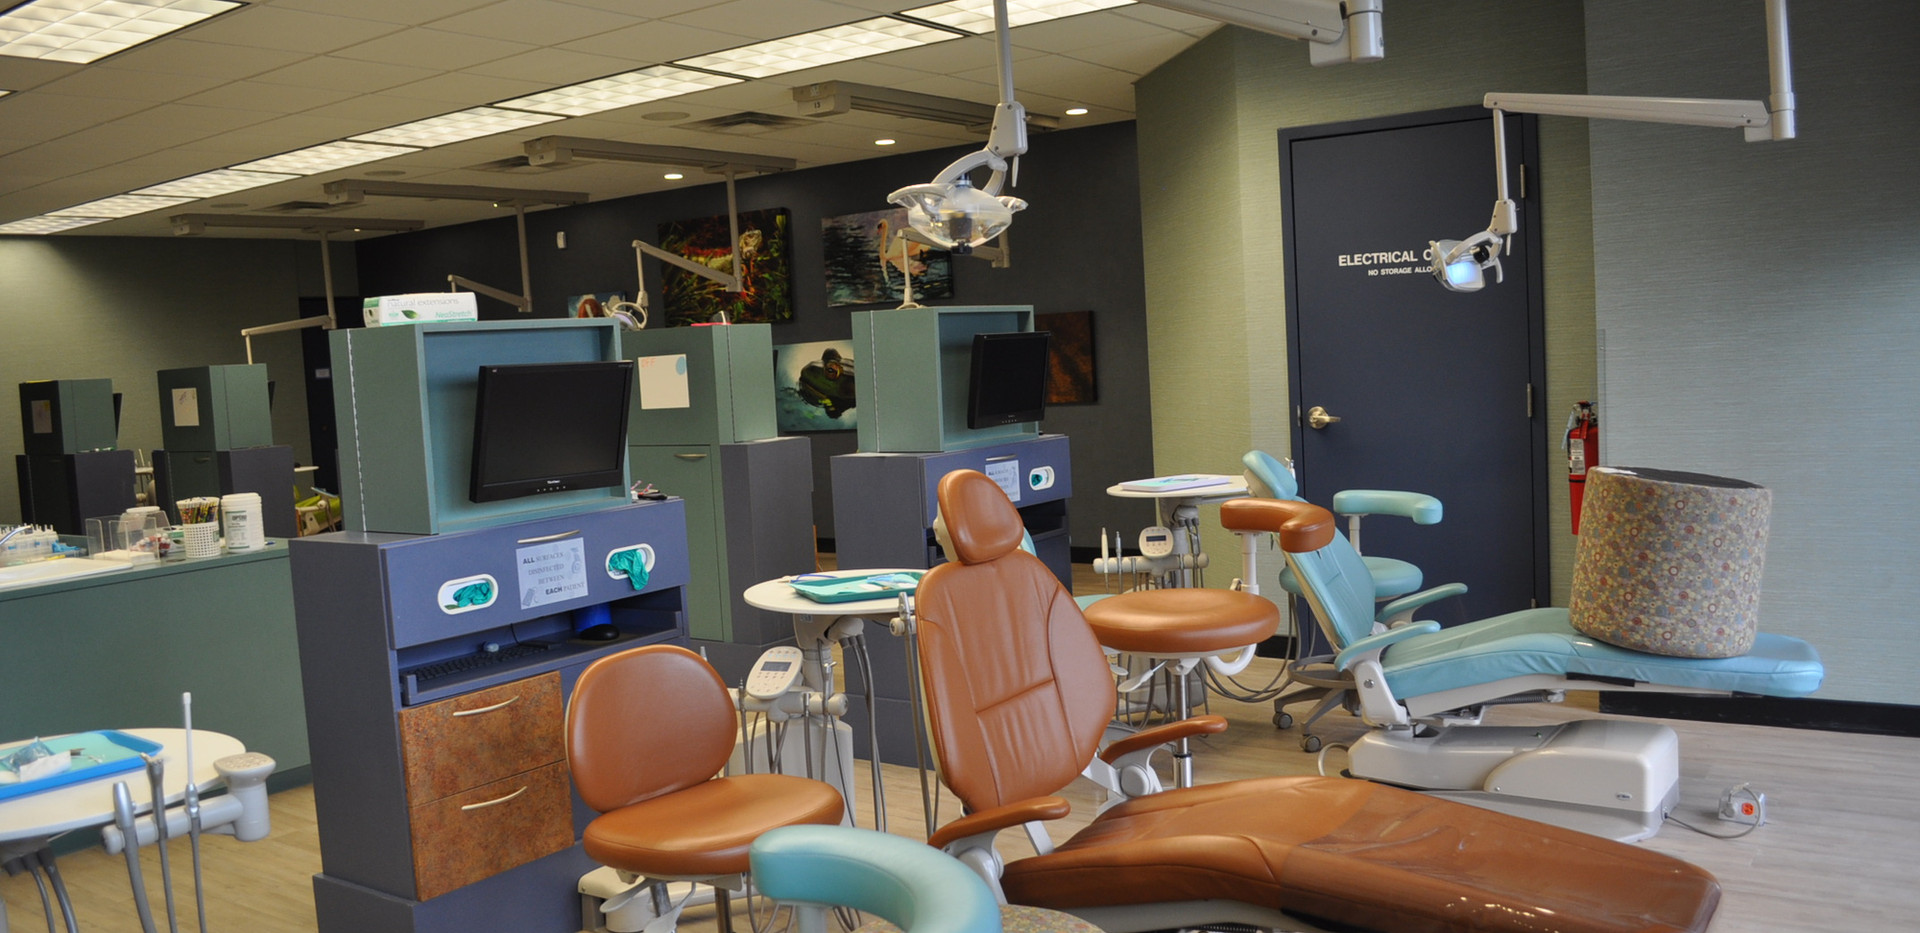 Dentist Operating Room - Buildout Pros